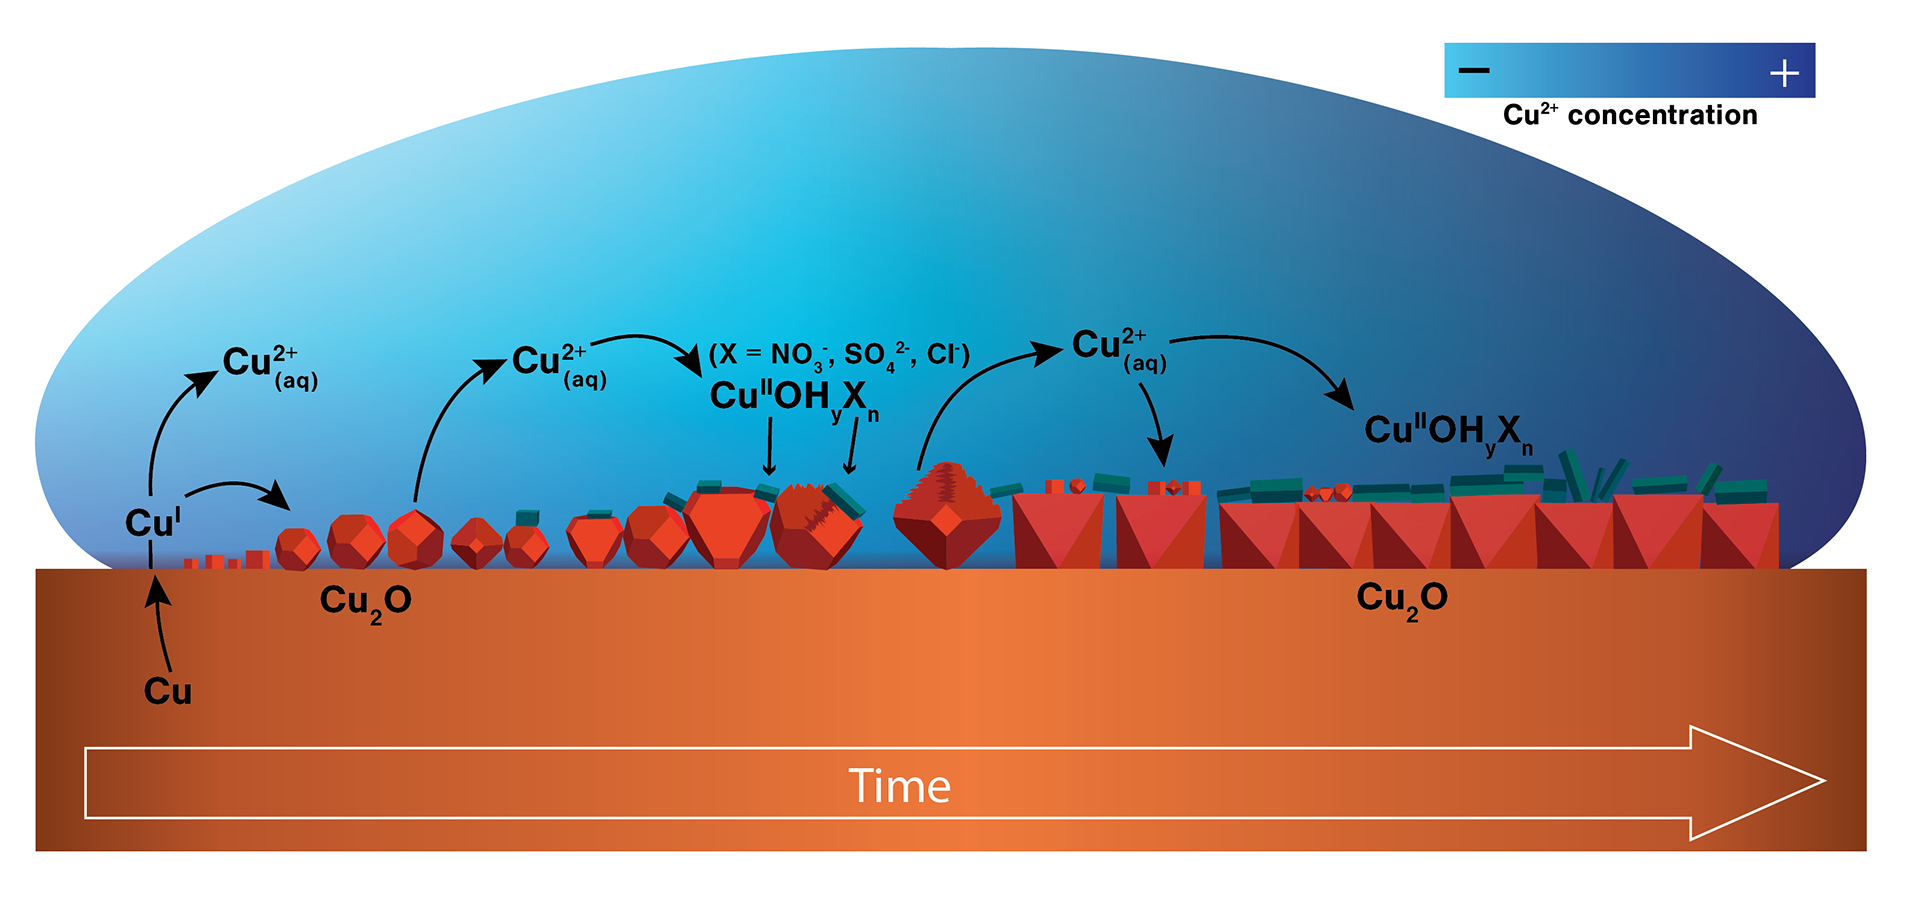 Diagram of the mechanism of copper corrosion in a small droplet